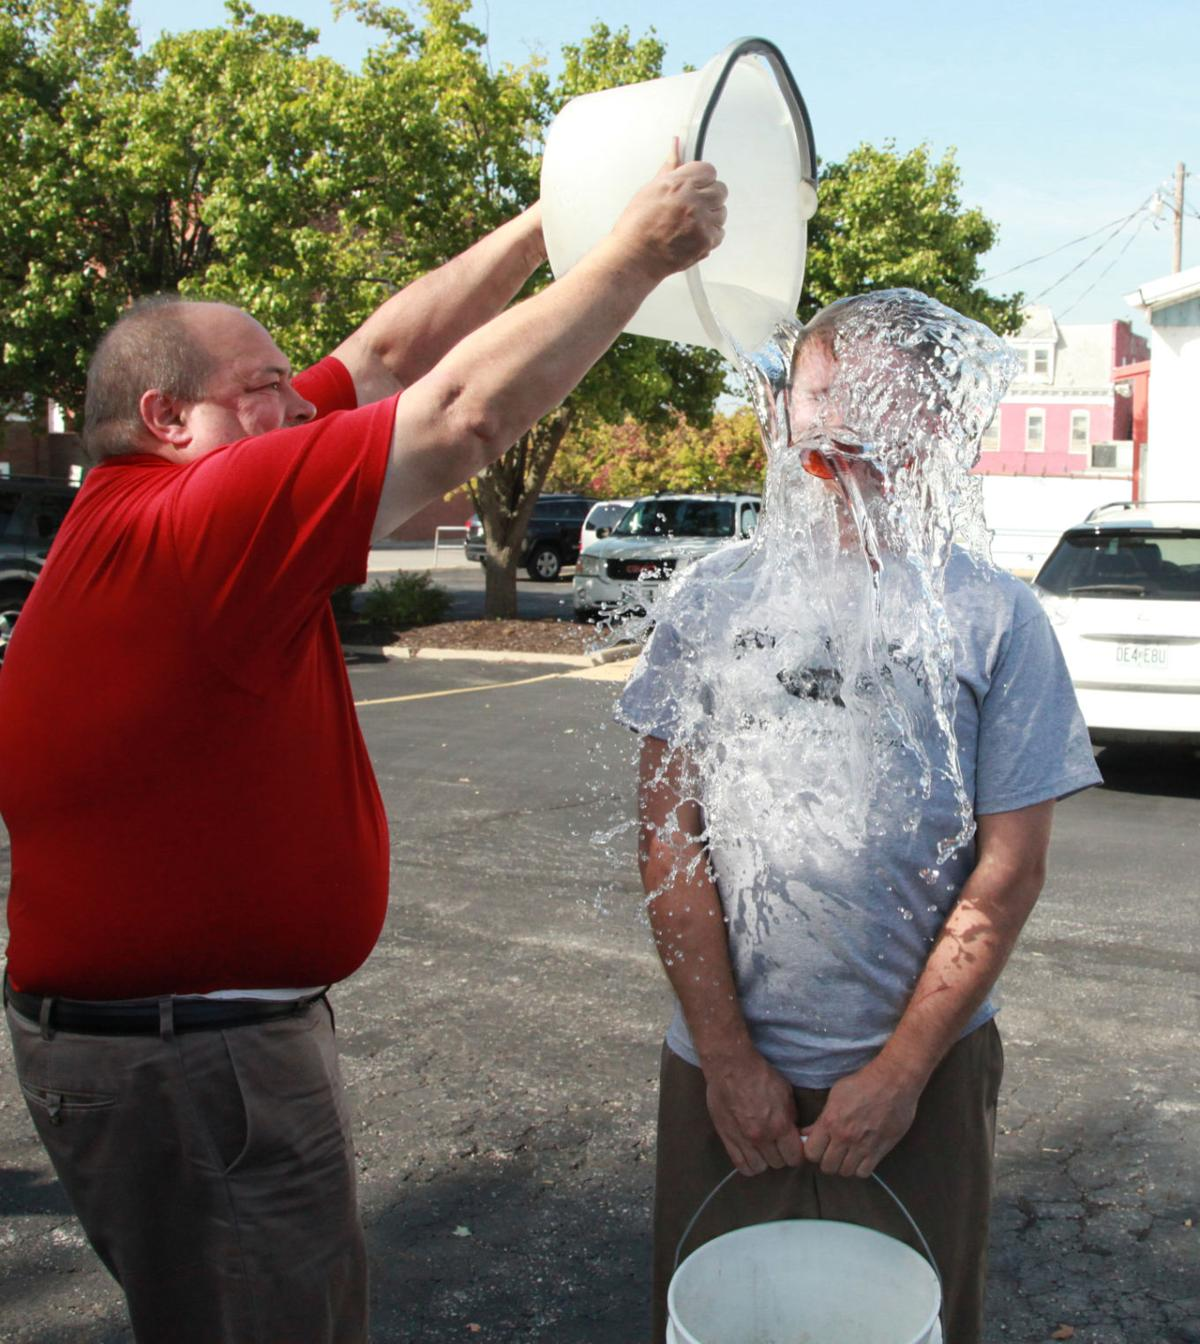 001 Washington Missourian Newspaper Ice Bucket Challenge.jpg